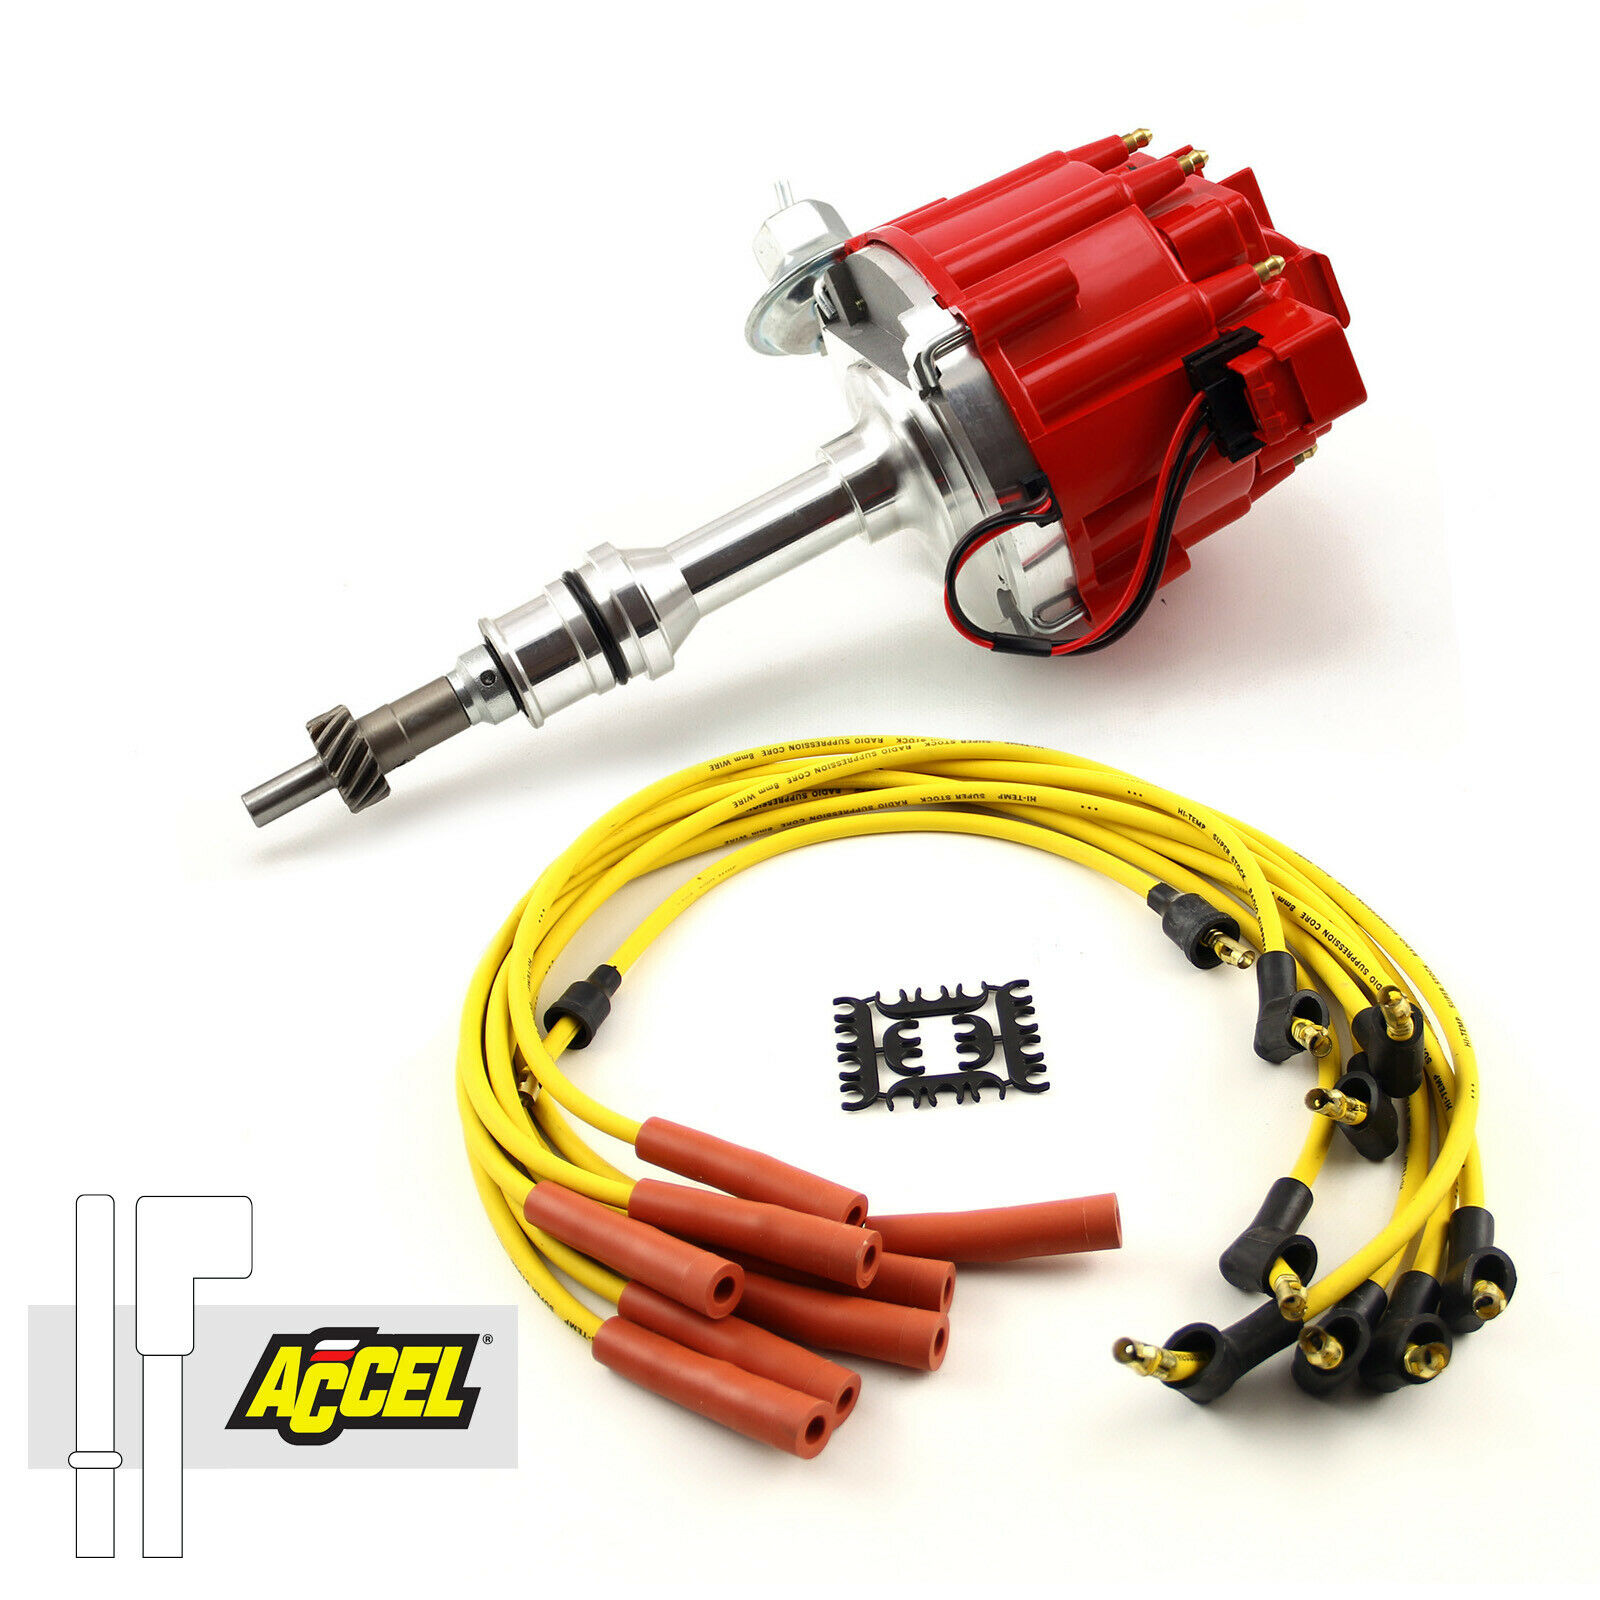 Accel Gm Hei Wiring Library 302 With Distributor Diagram Ford Sb 289 Windsor Spark Plug Wire Ignition Combo Kit